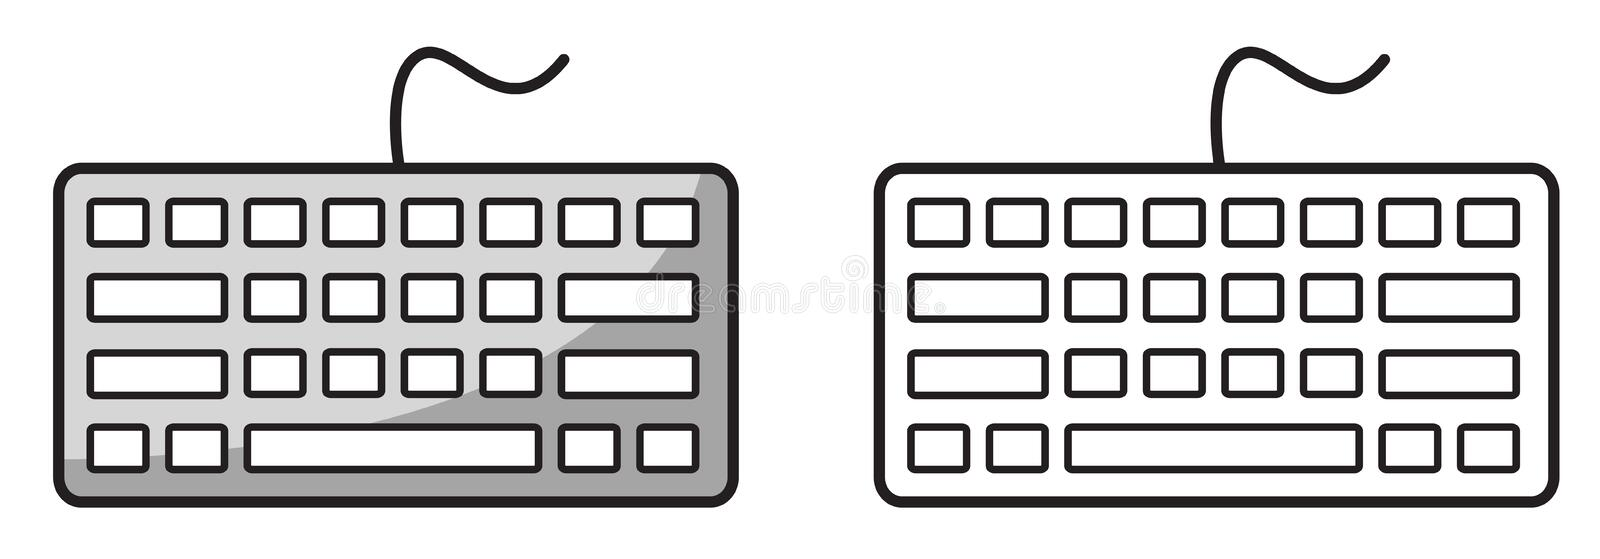 Colorful and black and white keyboard for coloring book royalty free illustration